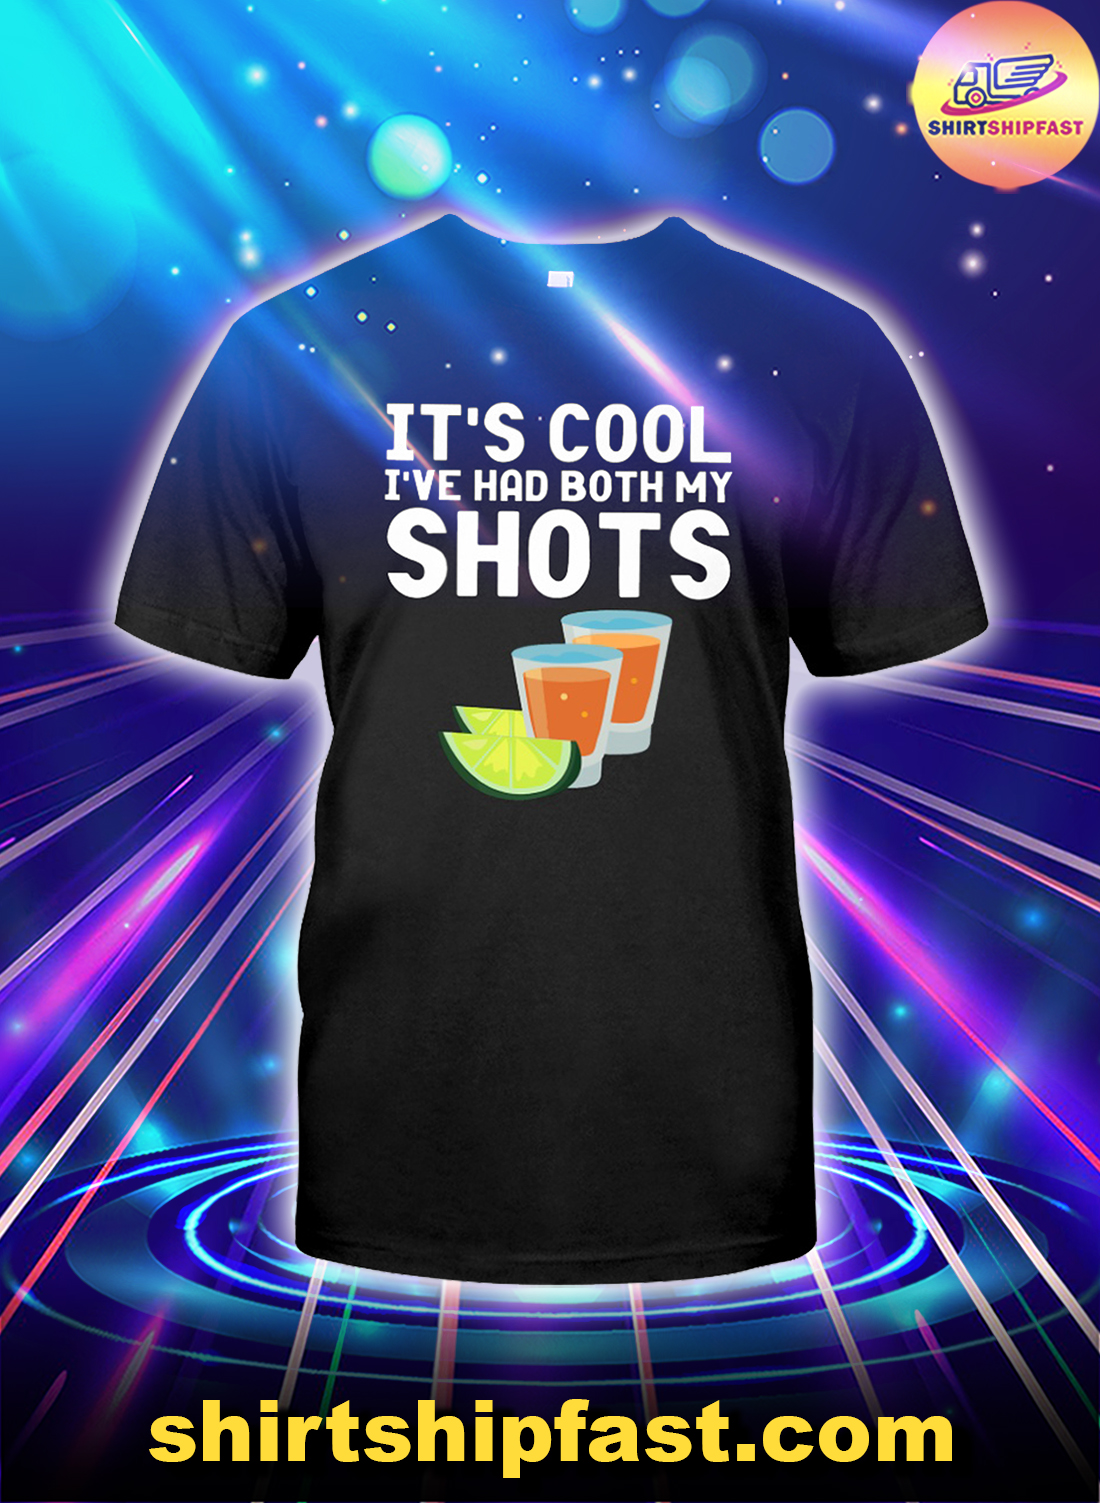 Tequila It's cool I've had both my shots shirt